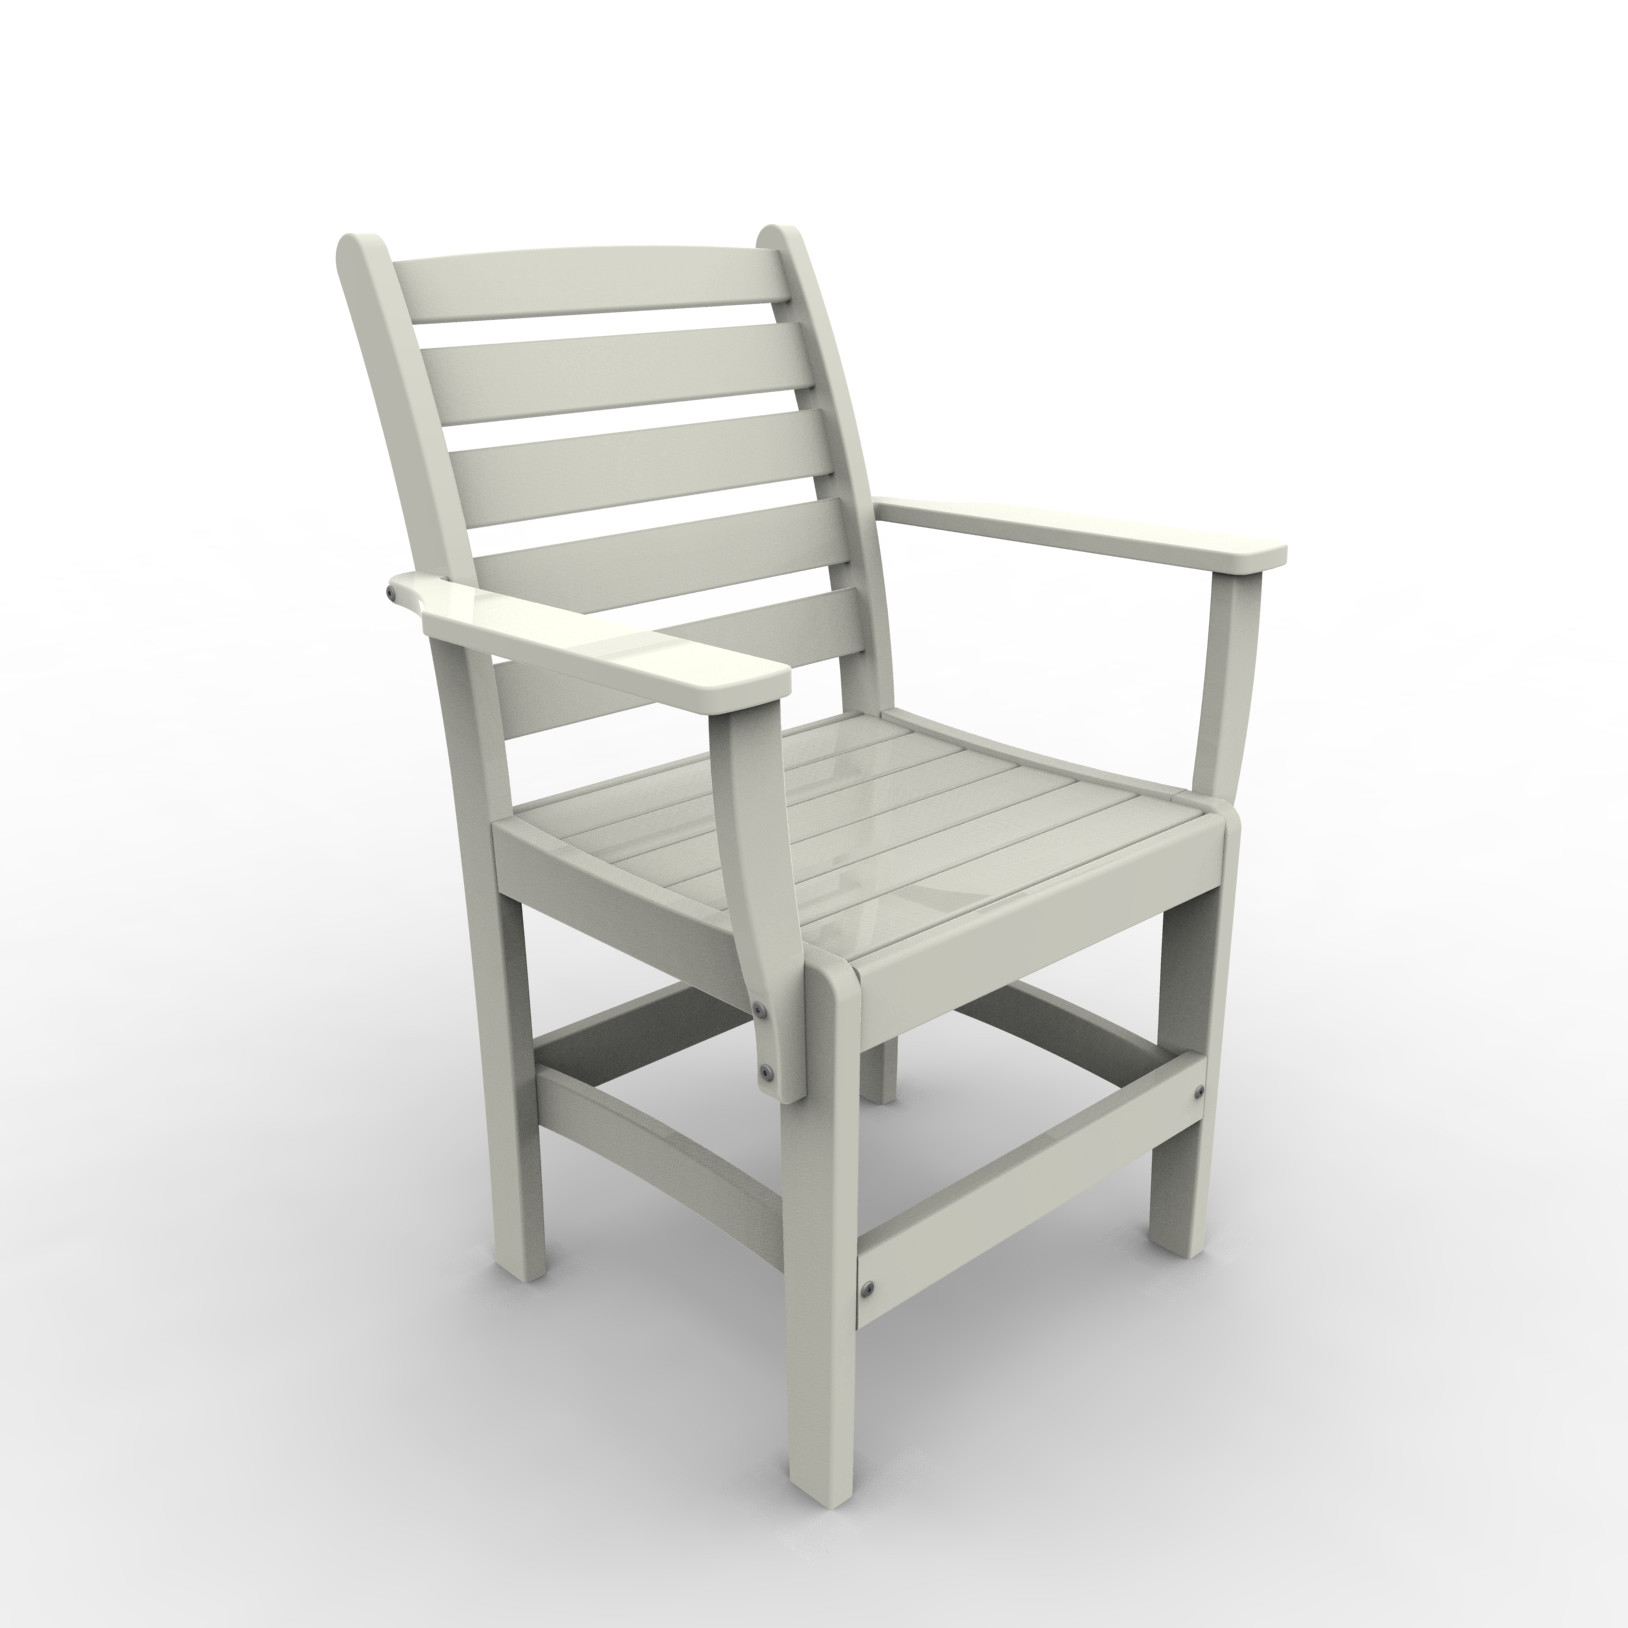 Malibu Outdoor Maywood Dining Chair   (Sold in Pairs)